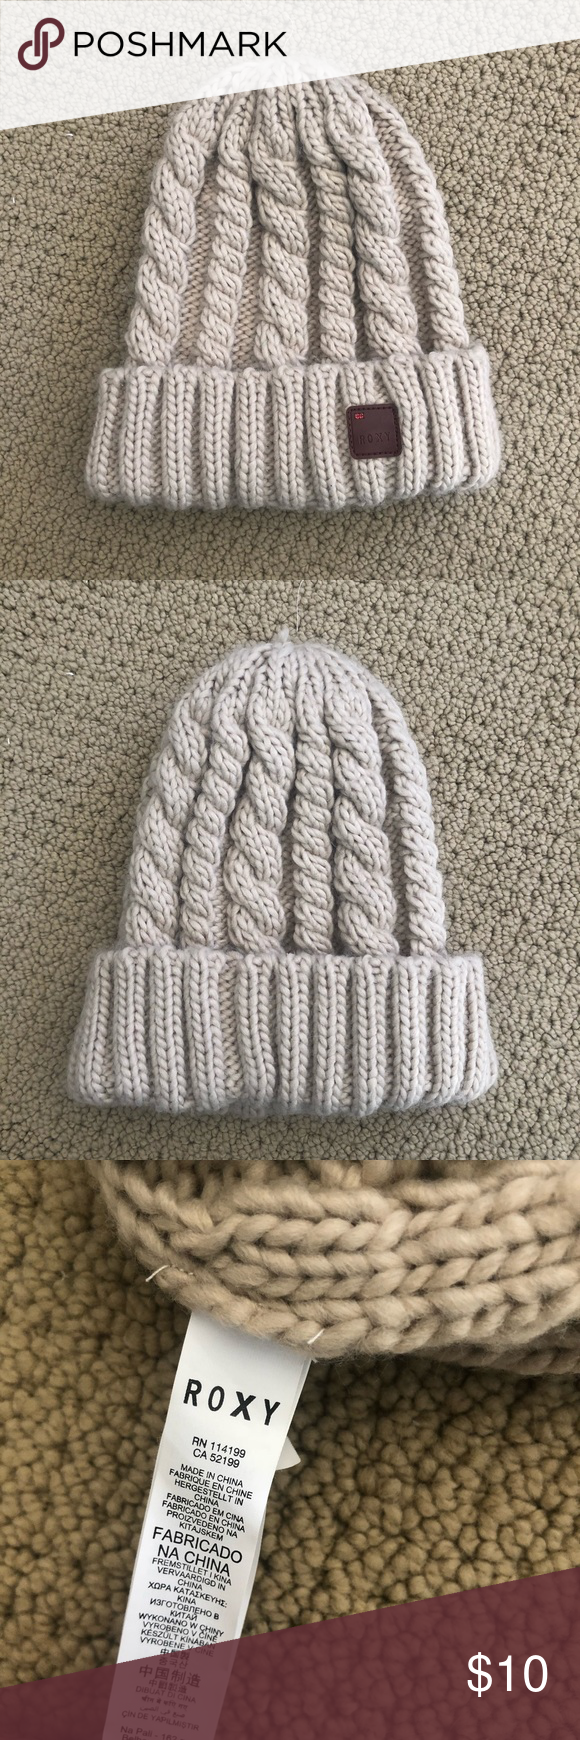 8d22a480b86 NWOT adorable knit Roxy winter hat Super warm and cozy knit hat in a  beautiful oatmeal